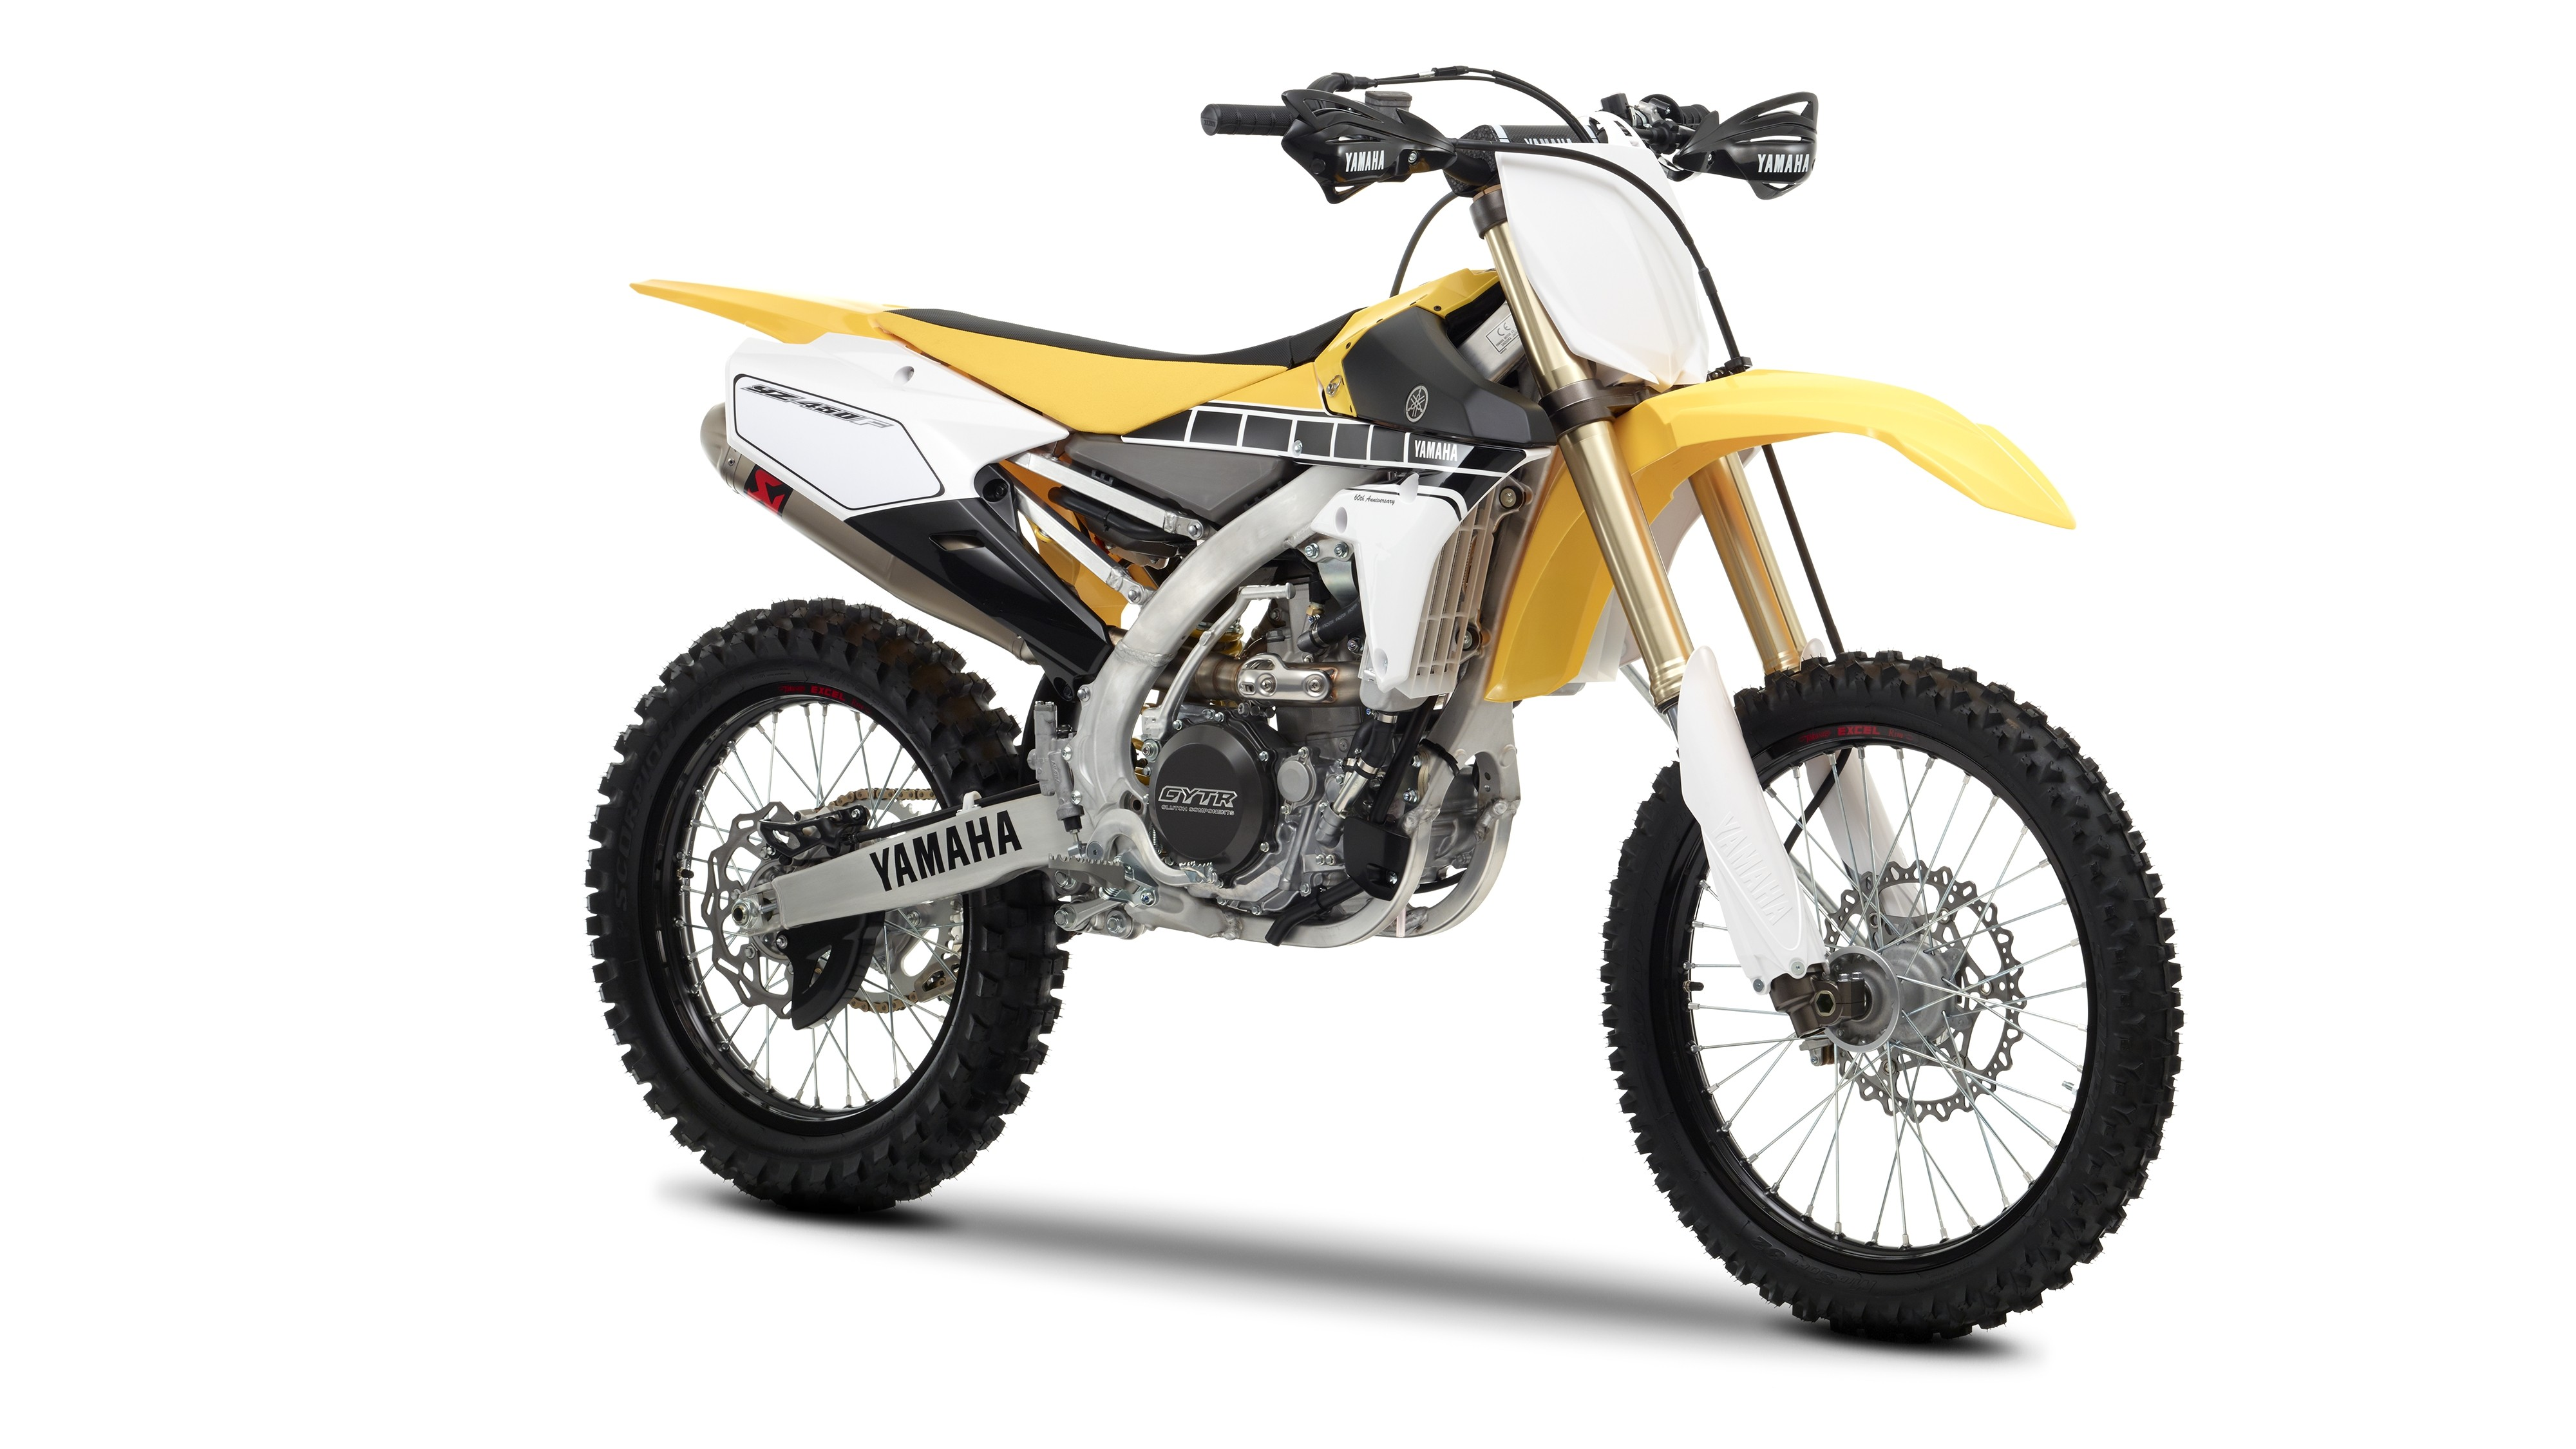 Yamaha Shows 2016 Yz250f And Yz450f Competition Bikes